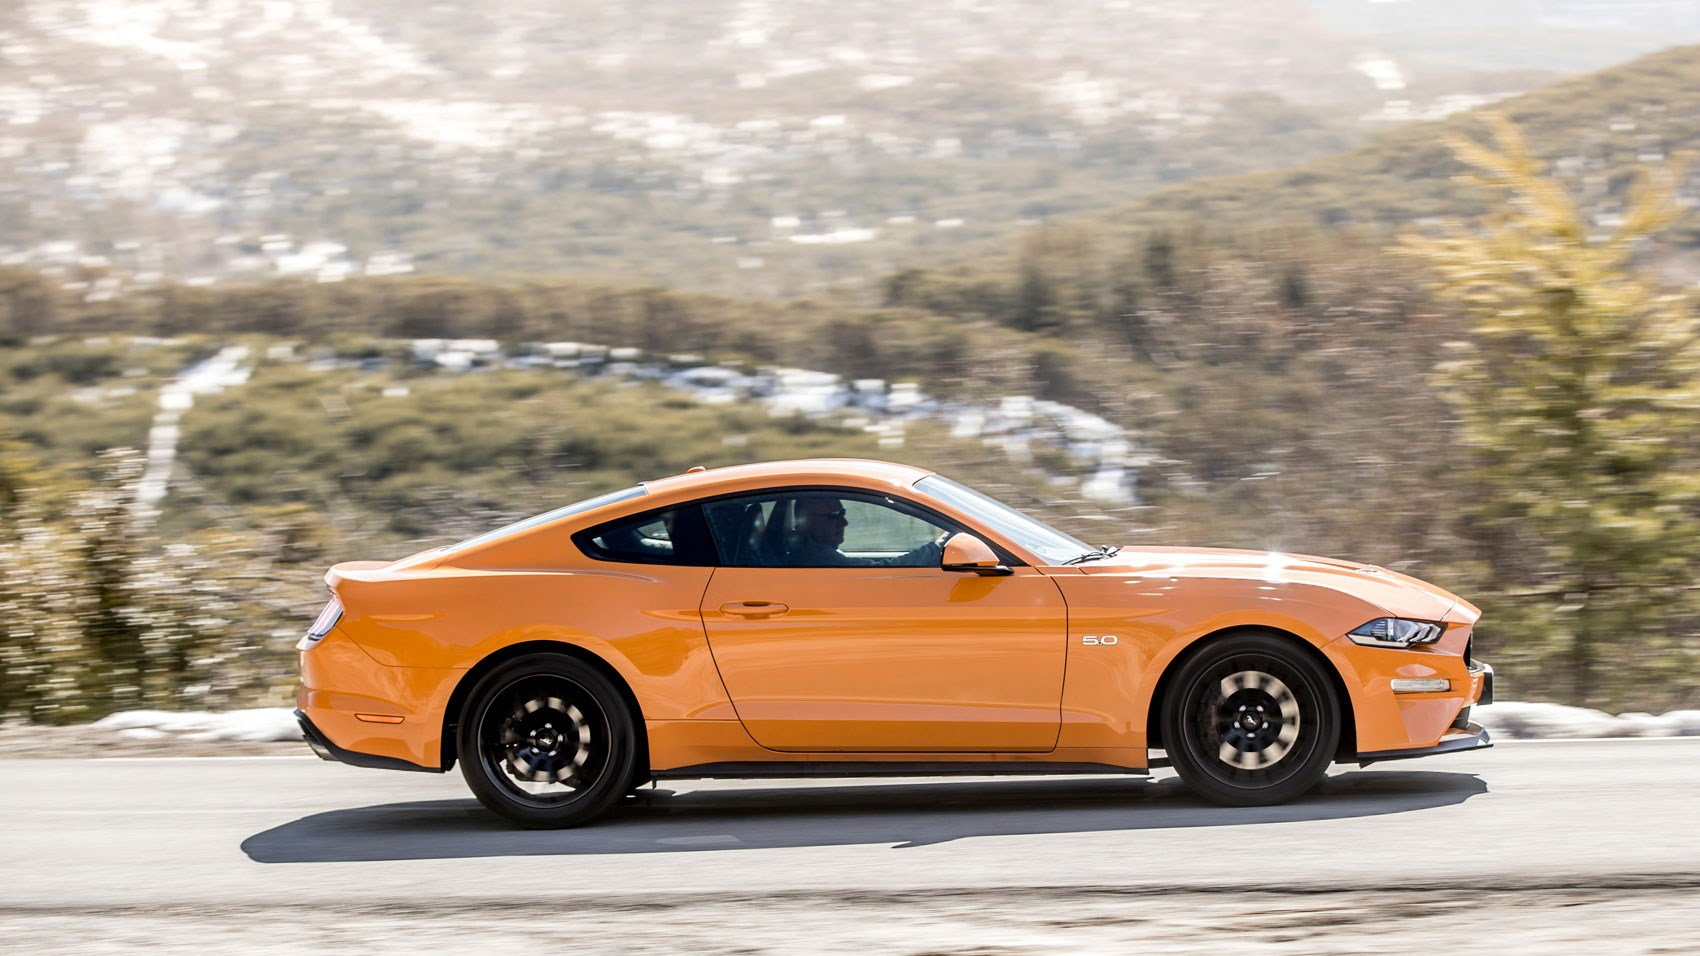 Ford Mustang Lease >> Ford Mustang GT (2018) review: more of everything is a good thing | CAR Magazine